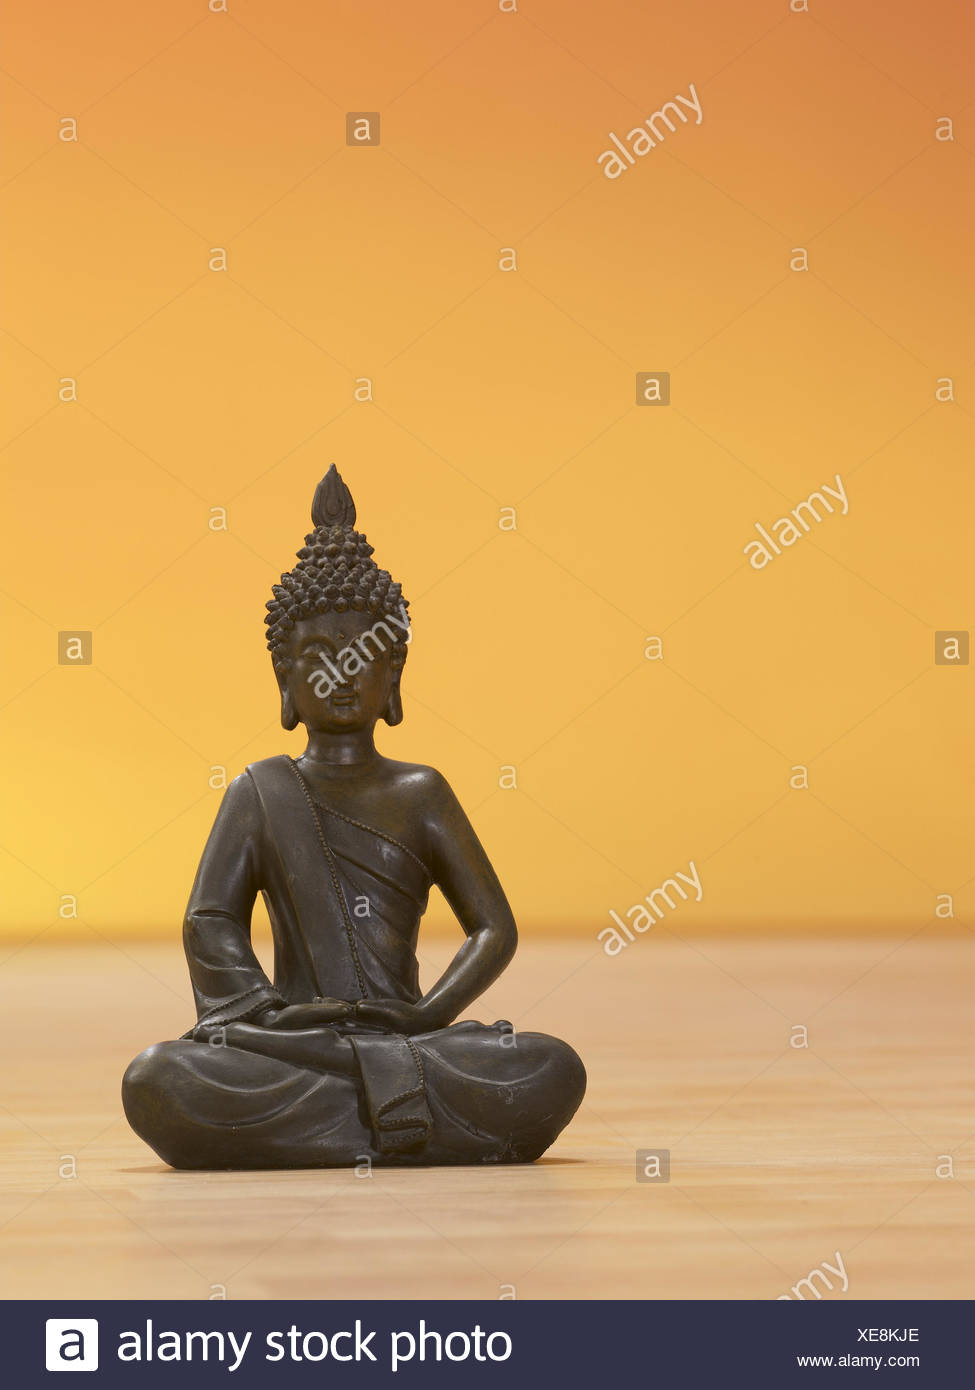 Indian Buddha's figure, lotus flowernsitz, figure, Buddha, Buddha's figure, Buddhism, meditation, concentration, yoga, wooden floor, sit, rest, Far Eastern, - Stock Image